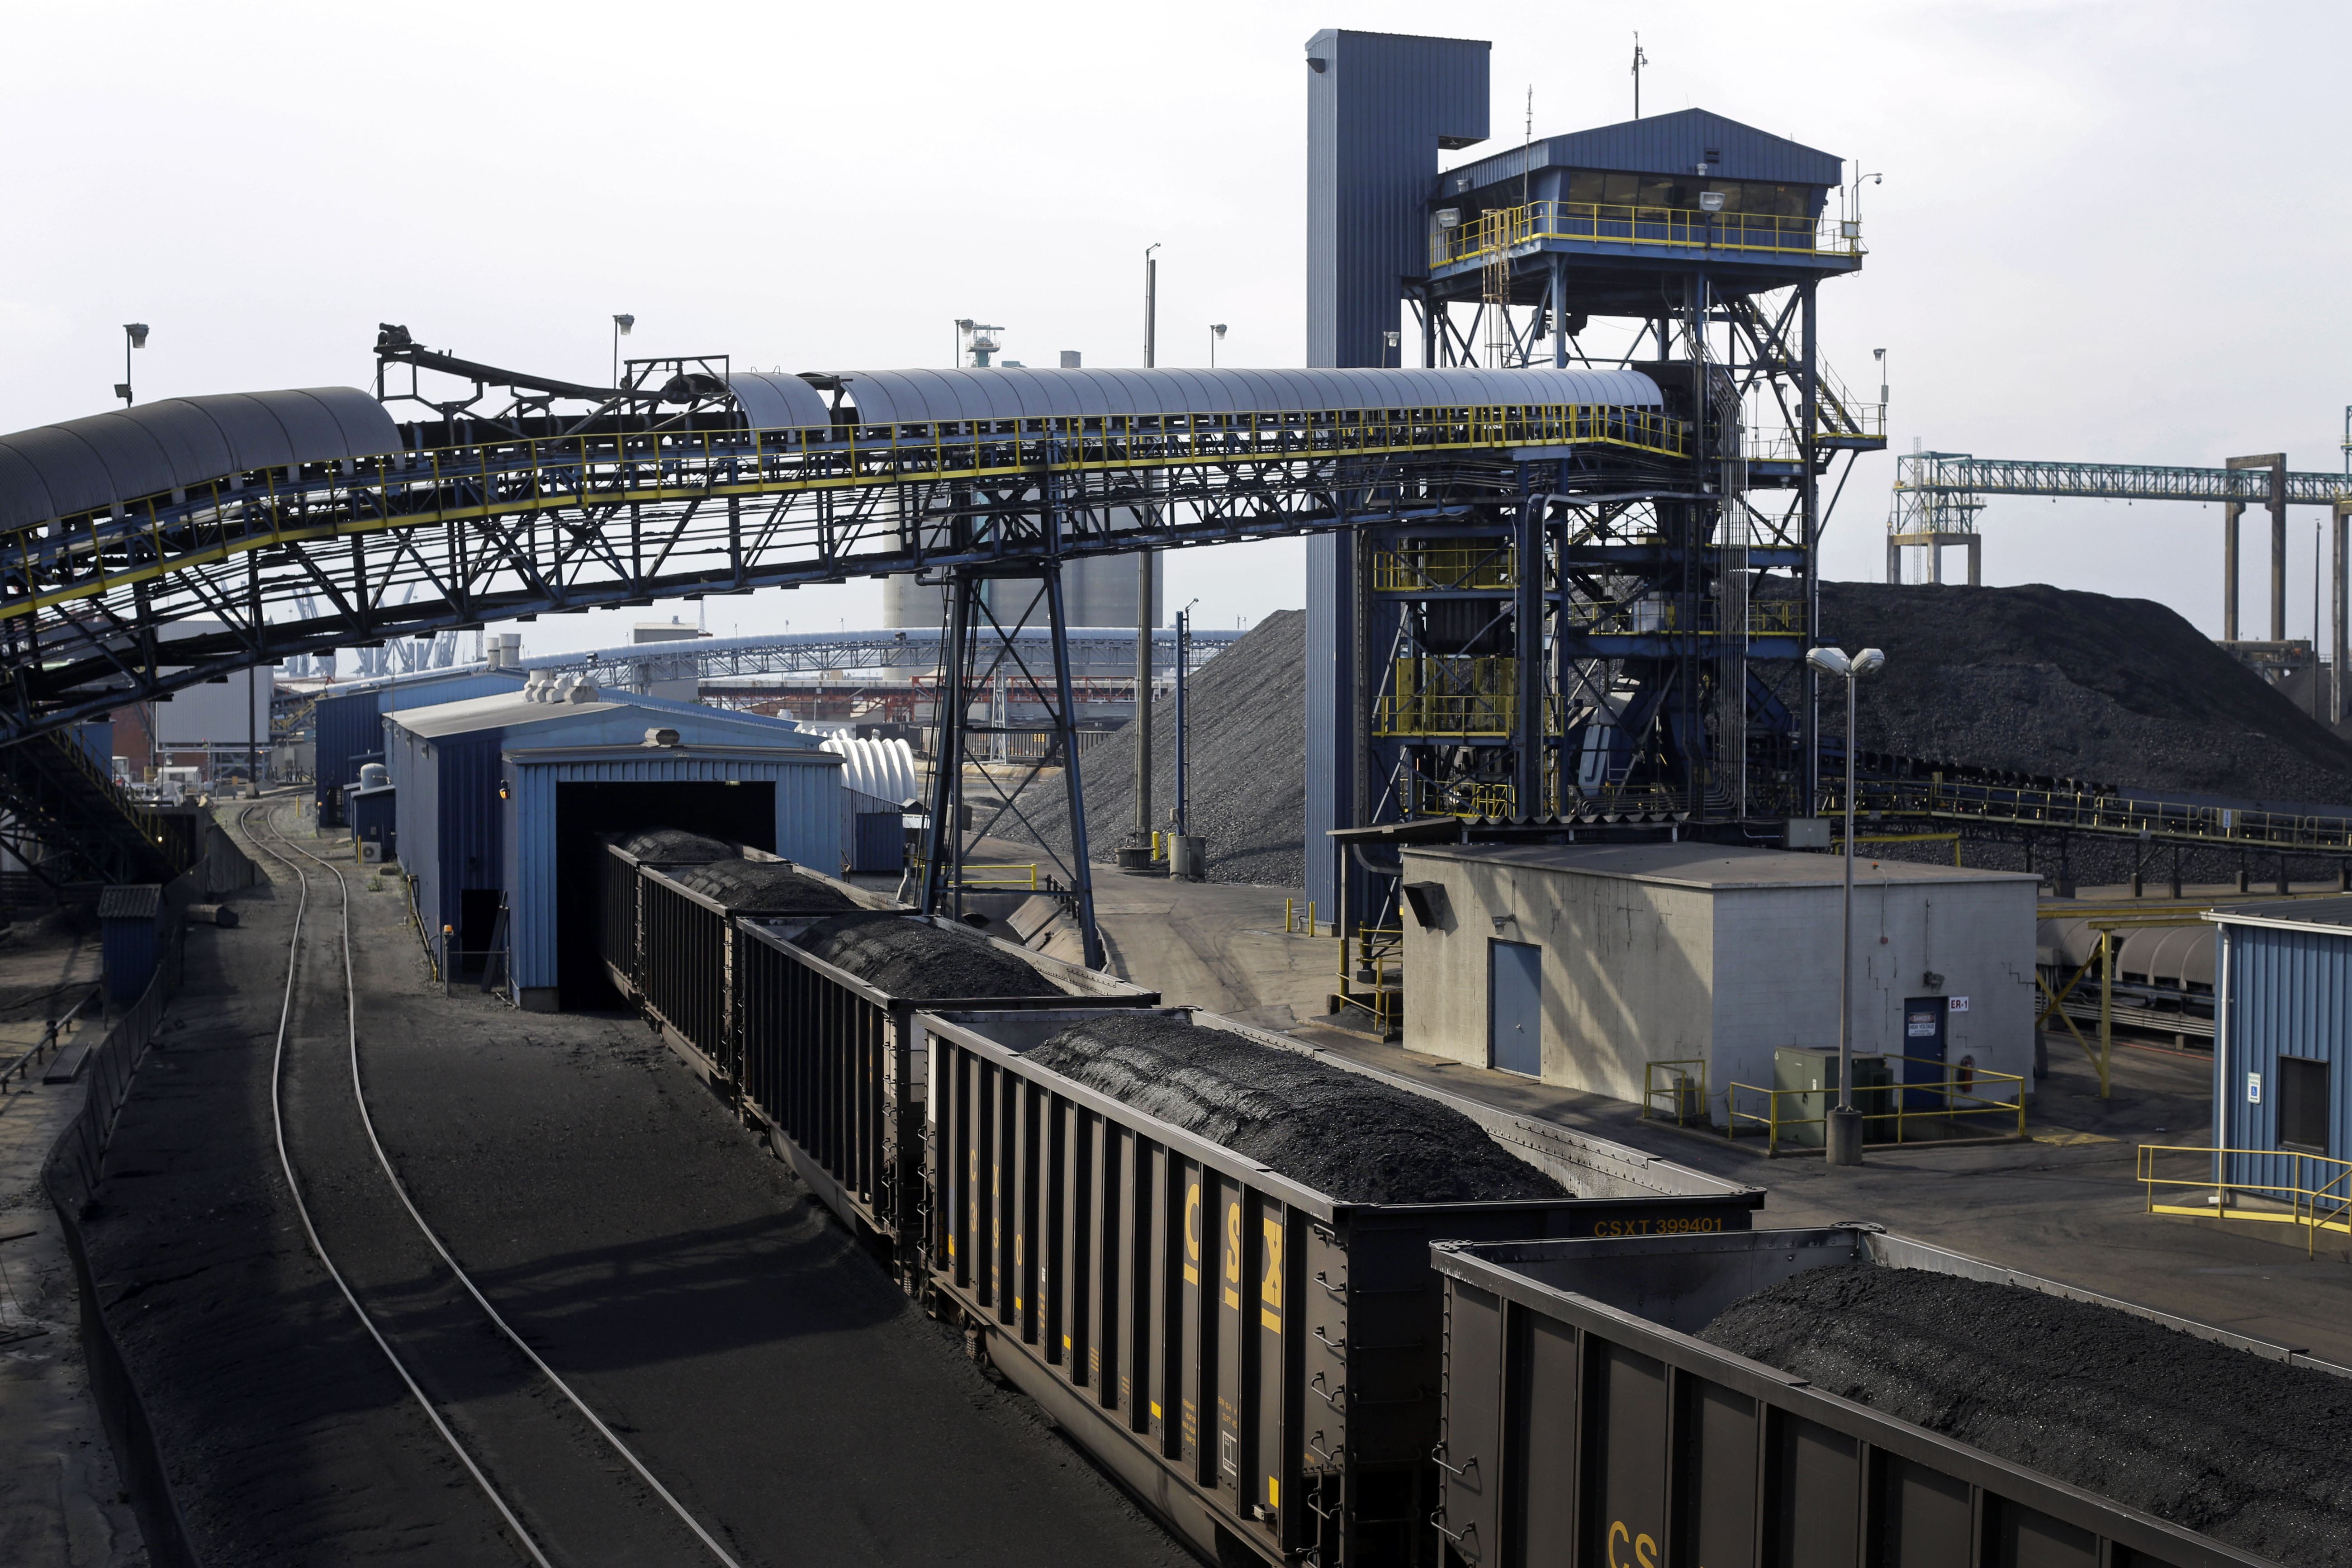 Obama Exporting Pollution Train cars containing coal roll into an unloading facility at Dominion Terminal Associates' coal terminal in Newport News, Va., in this May 22, 2014, photo. As the Obama administration weans the U.S. off dirty fuels blamed for global warming, energy companies have been sending more of America's unwanted energy leftovers to other parts of the world, where they could create even more pollution. With companies looking to double America's coal exports, the nation's growing position in the global energy trade could make global warming worse, fueling the world's demand for coal when many experts say most fossil fuels should remain in the ground to avert the most disastrous effects of climate change.